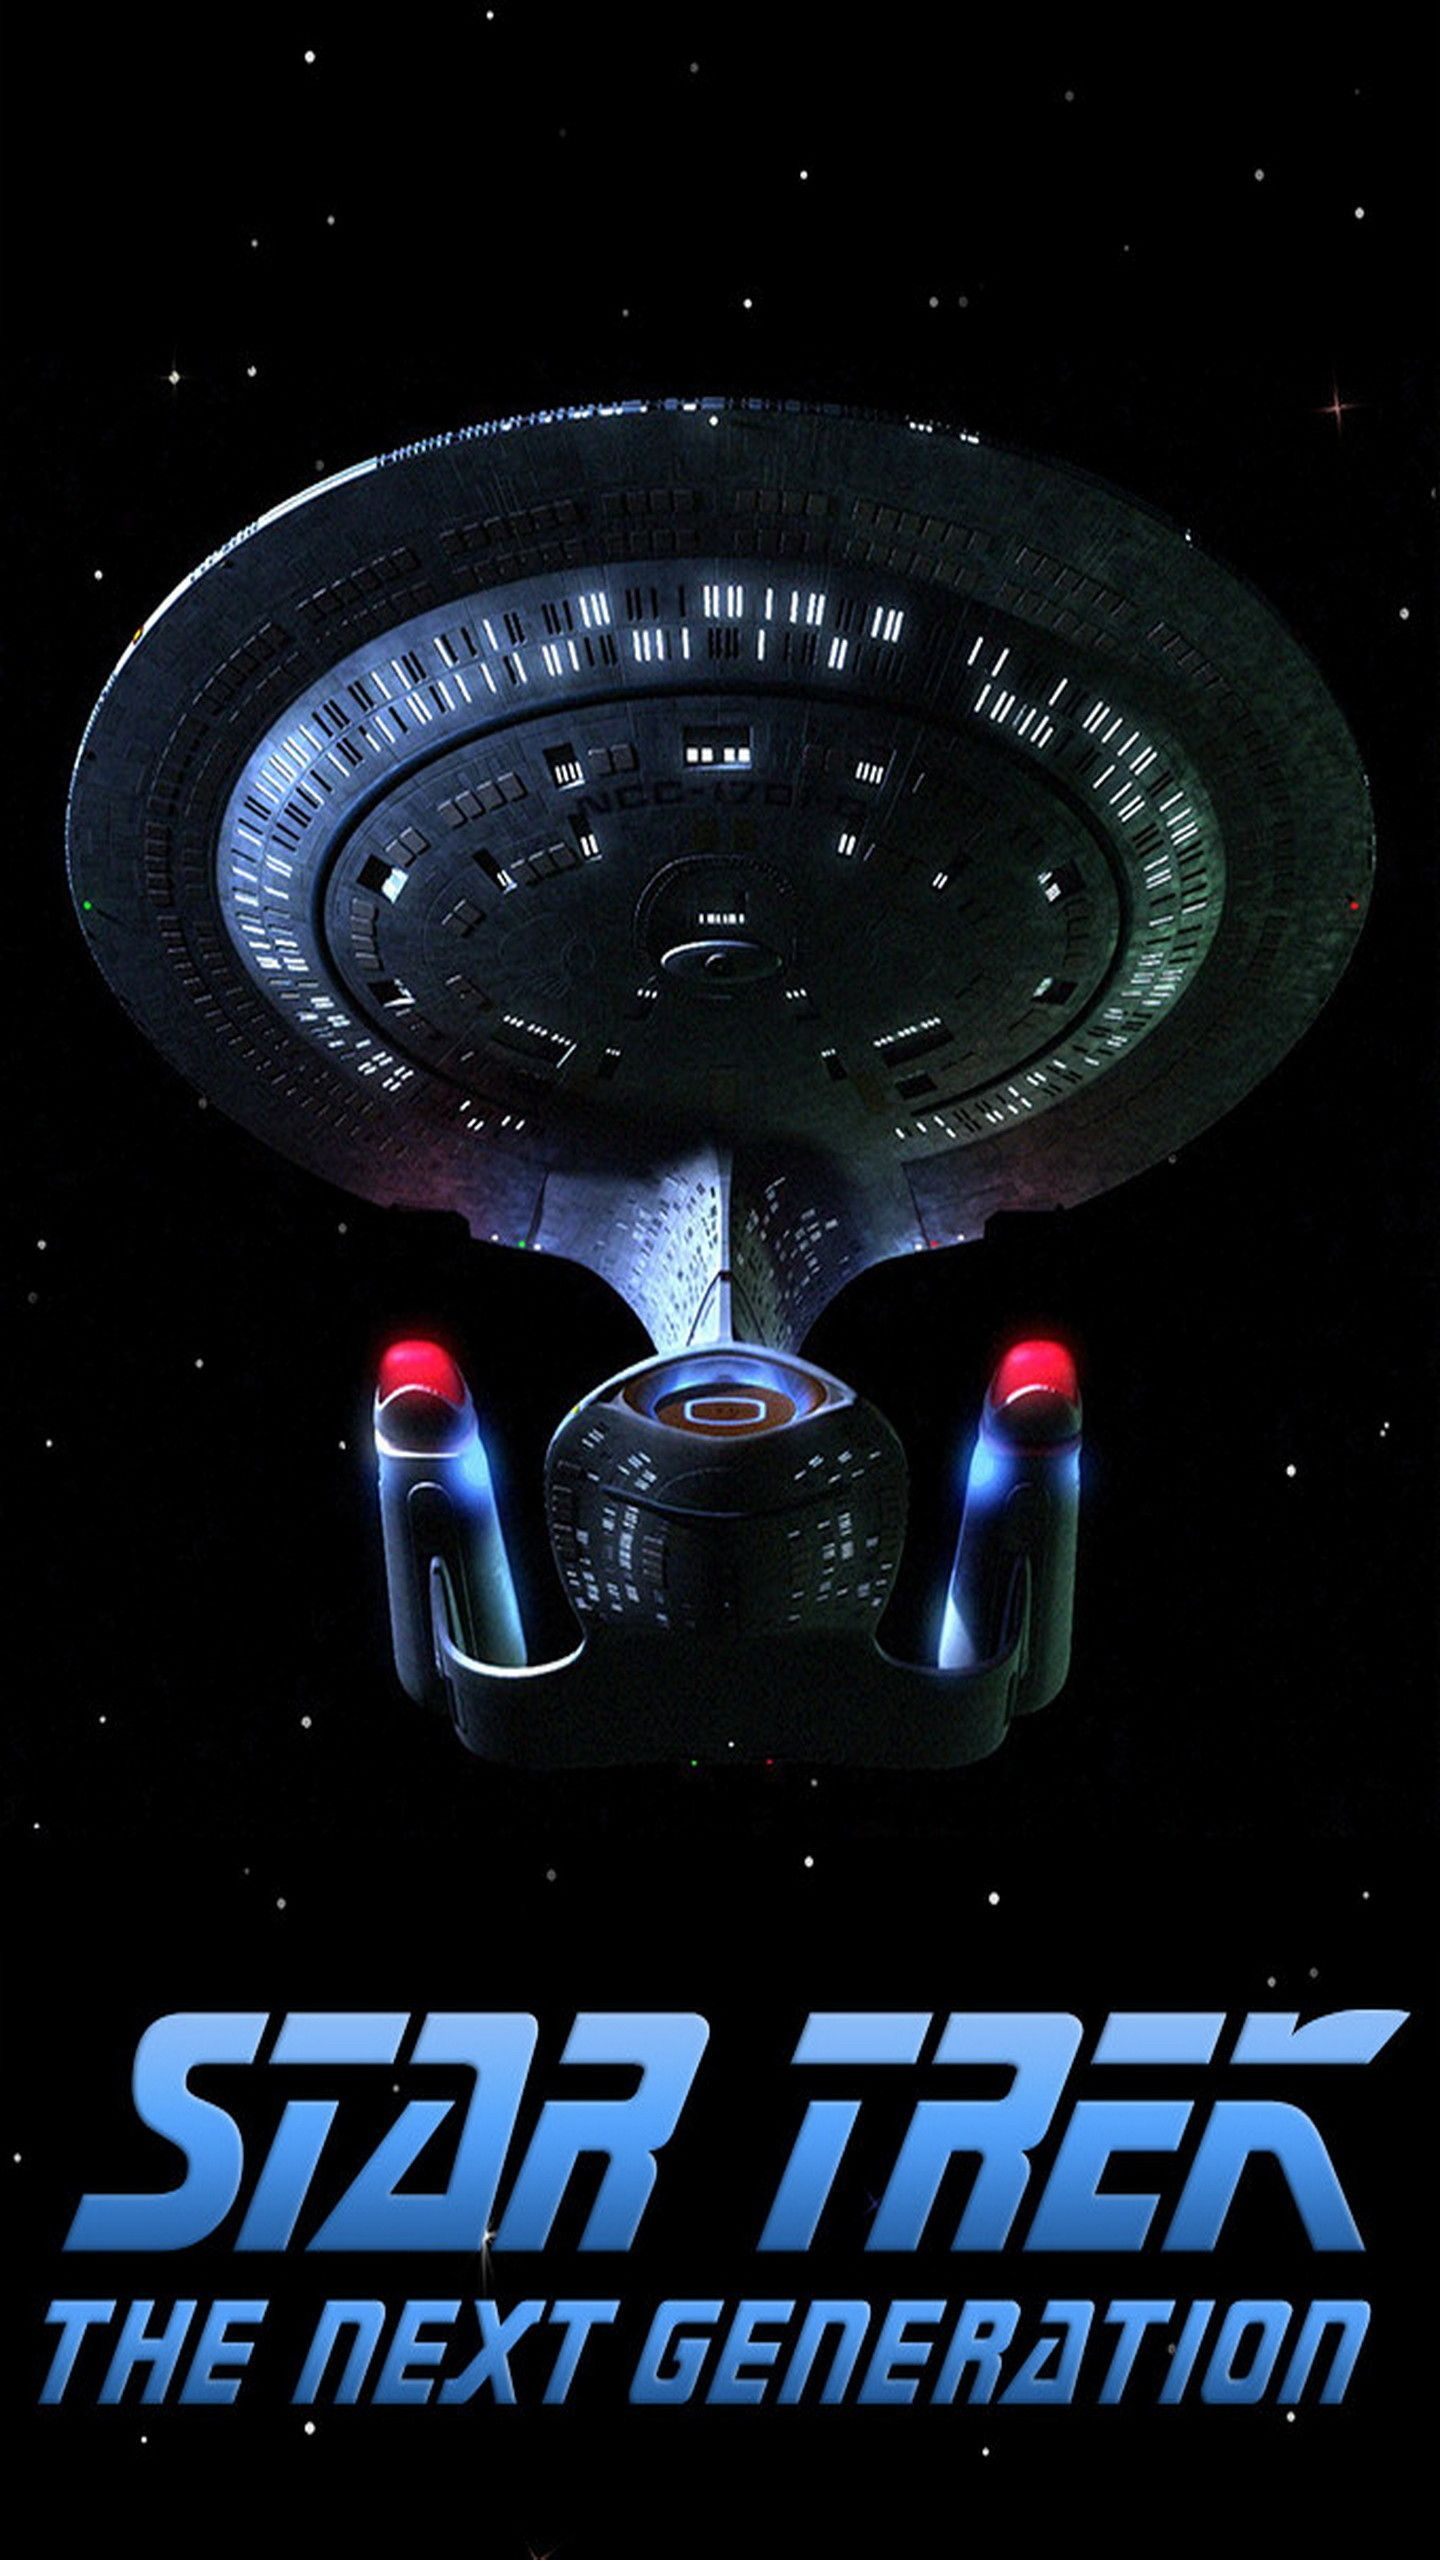 Star Trek Tng Iphone Wallpapers Top Free Star Trek Tng Iphone